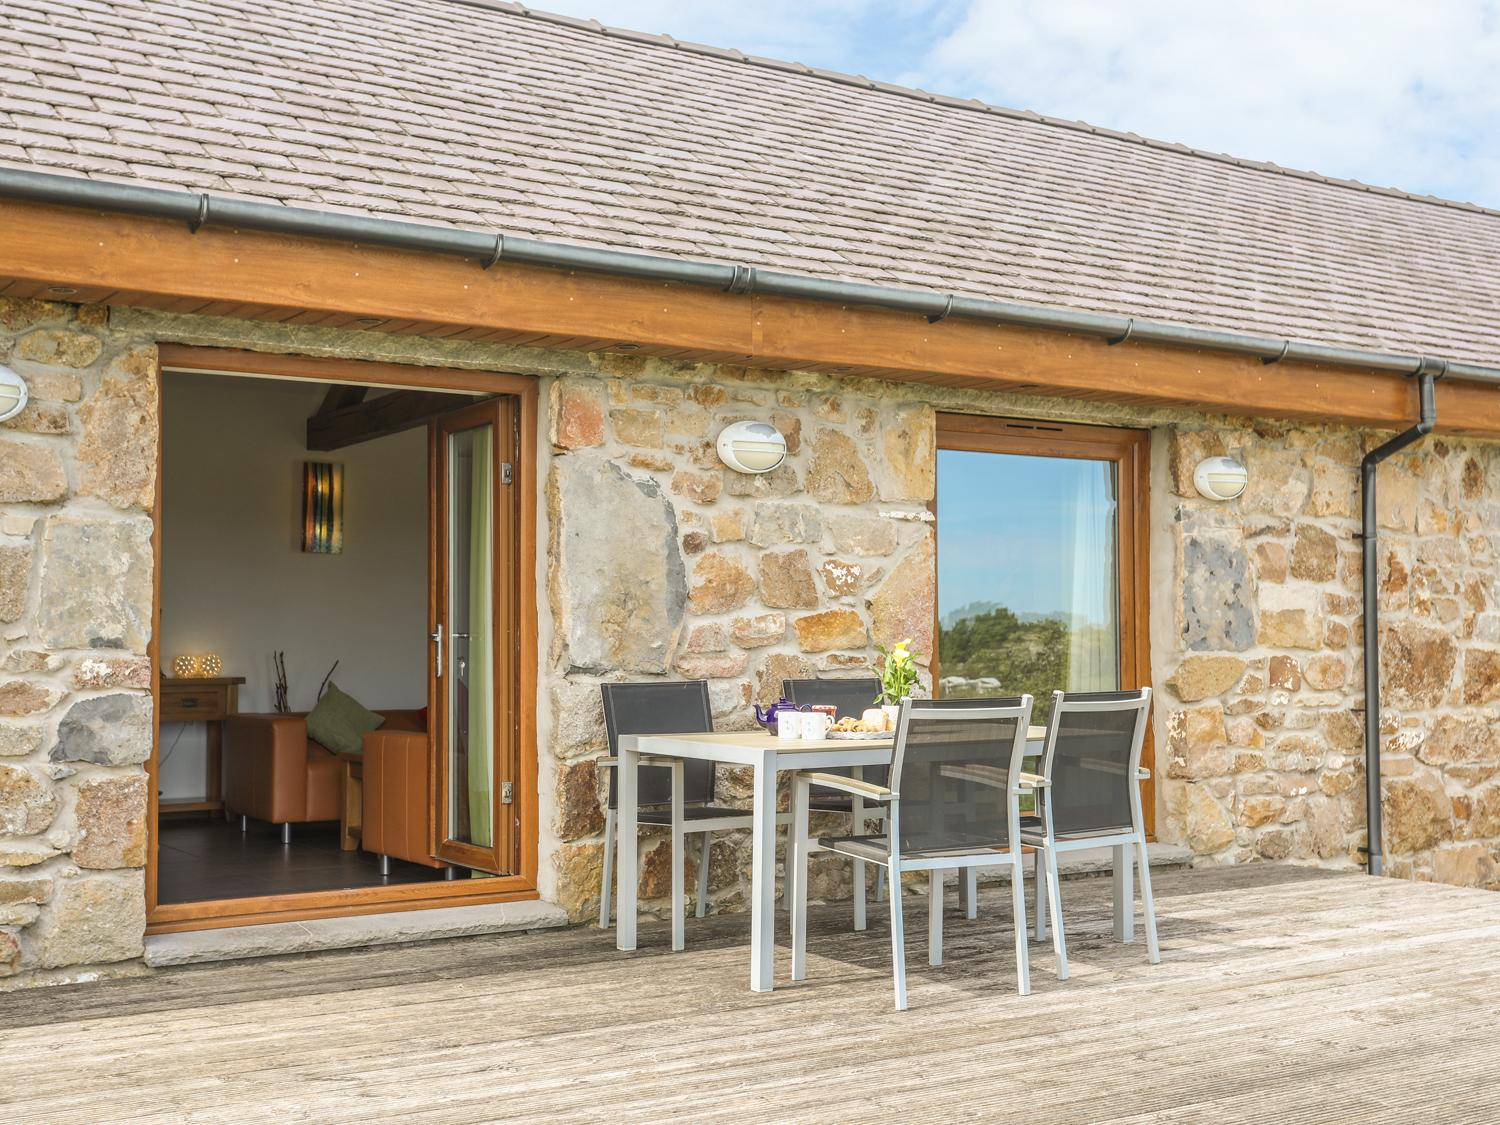 Barn Owl, Brynteg, Isle Of Anglesey - Holiday Cottage Reviews